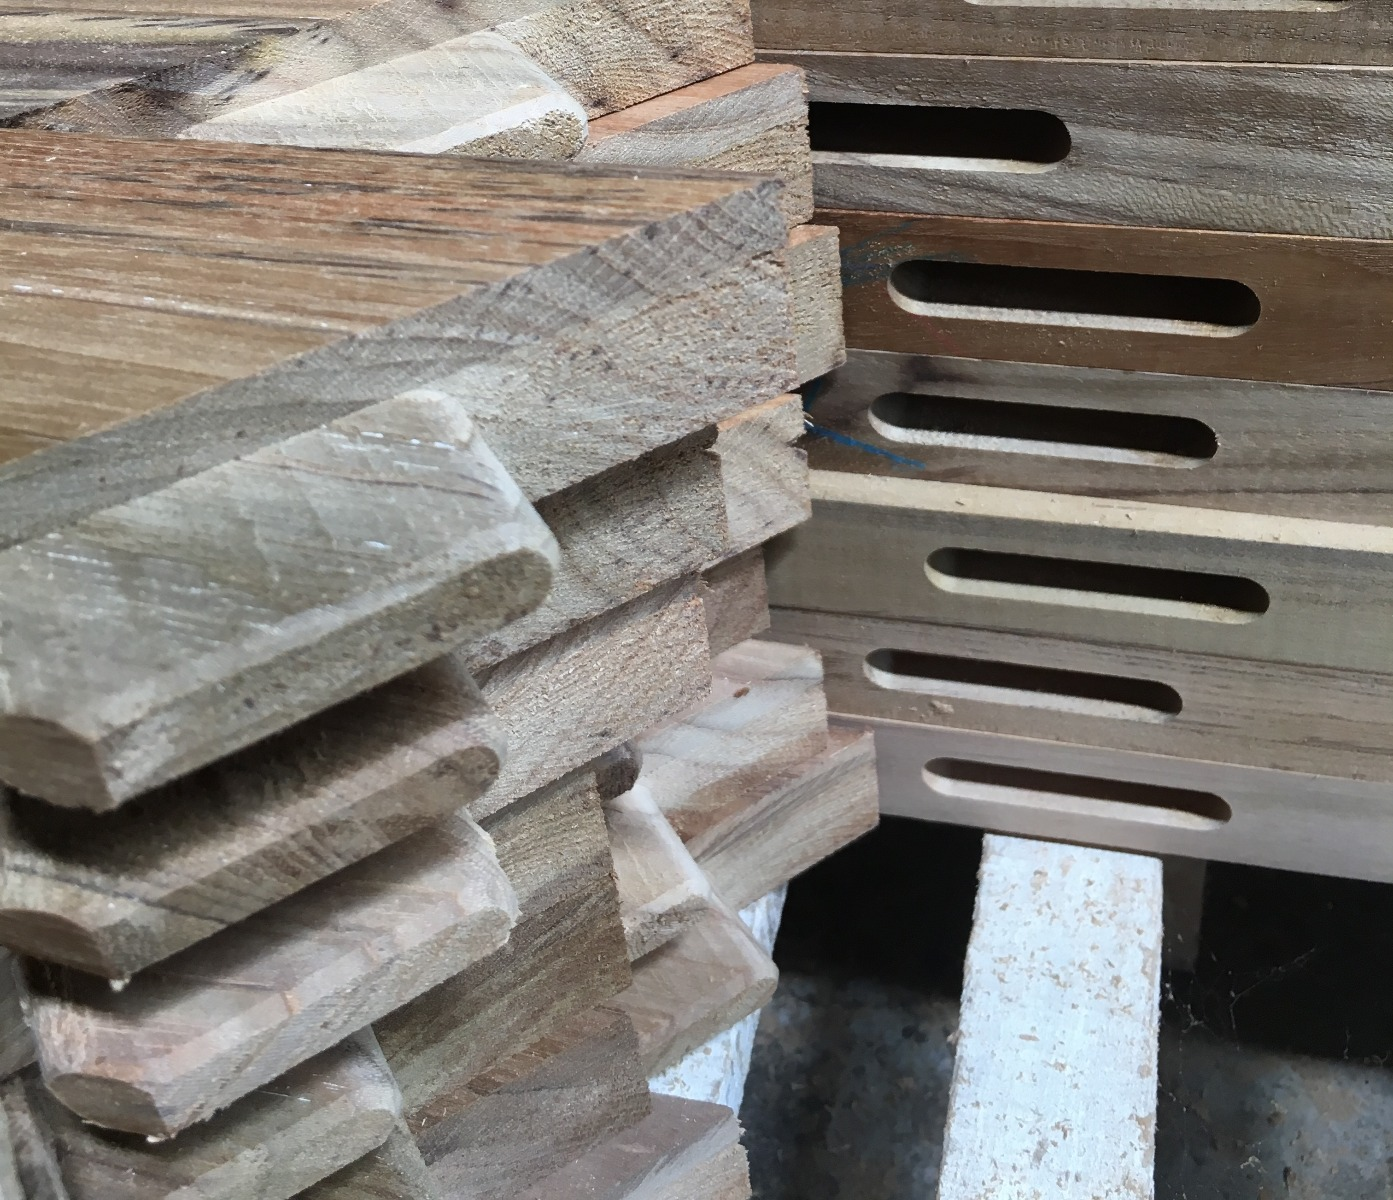 Mortice & Tenon Joints